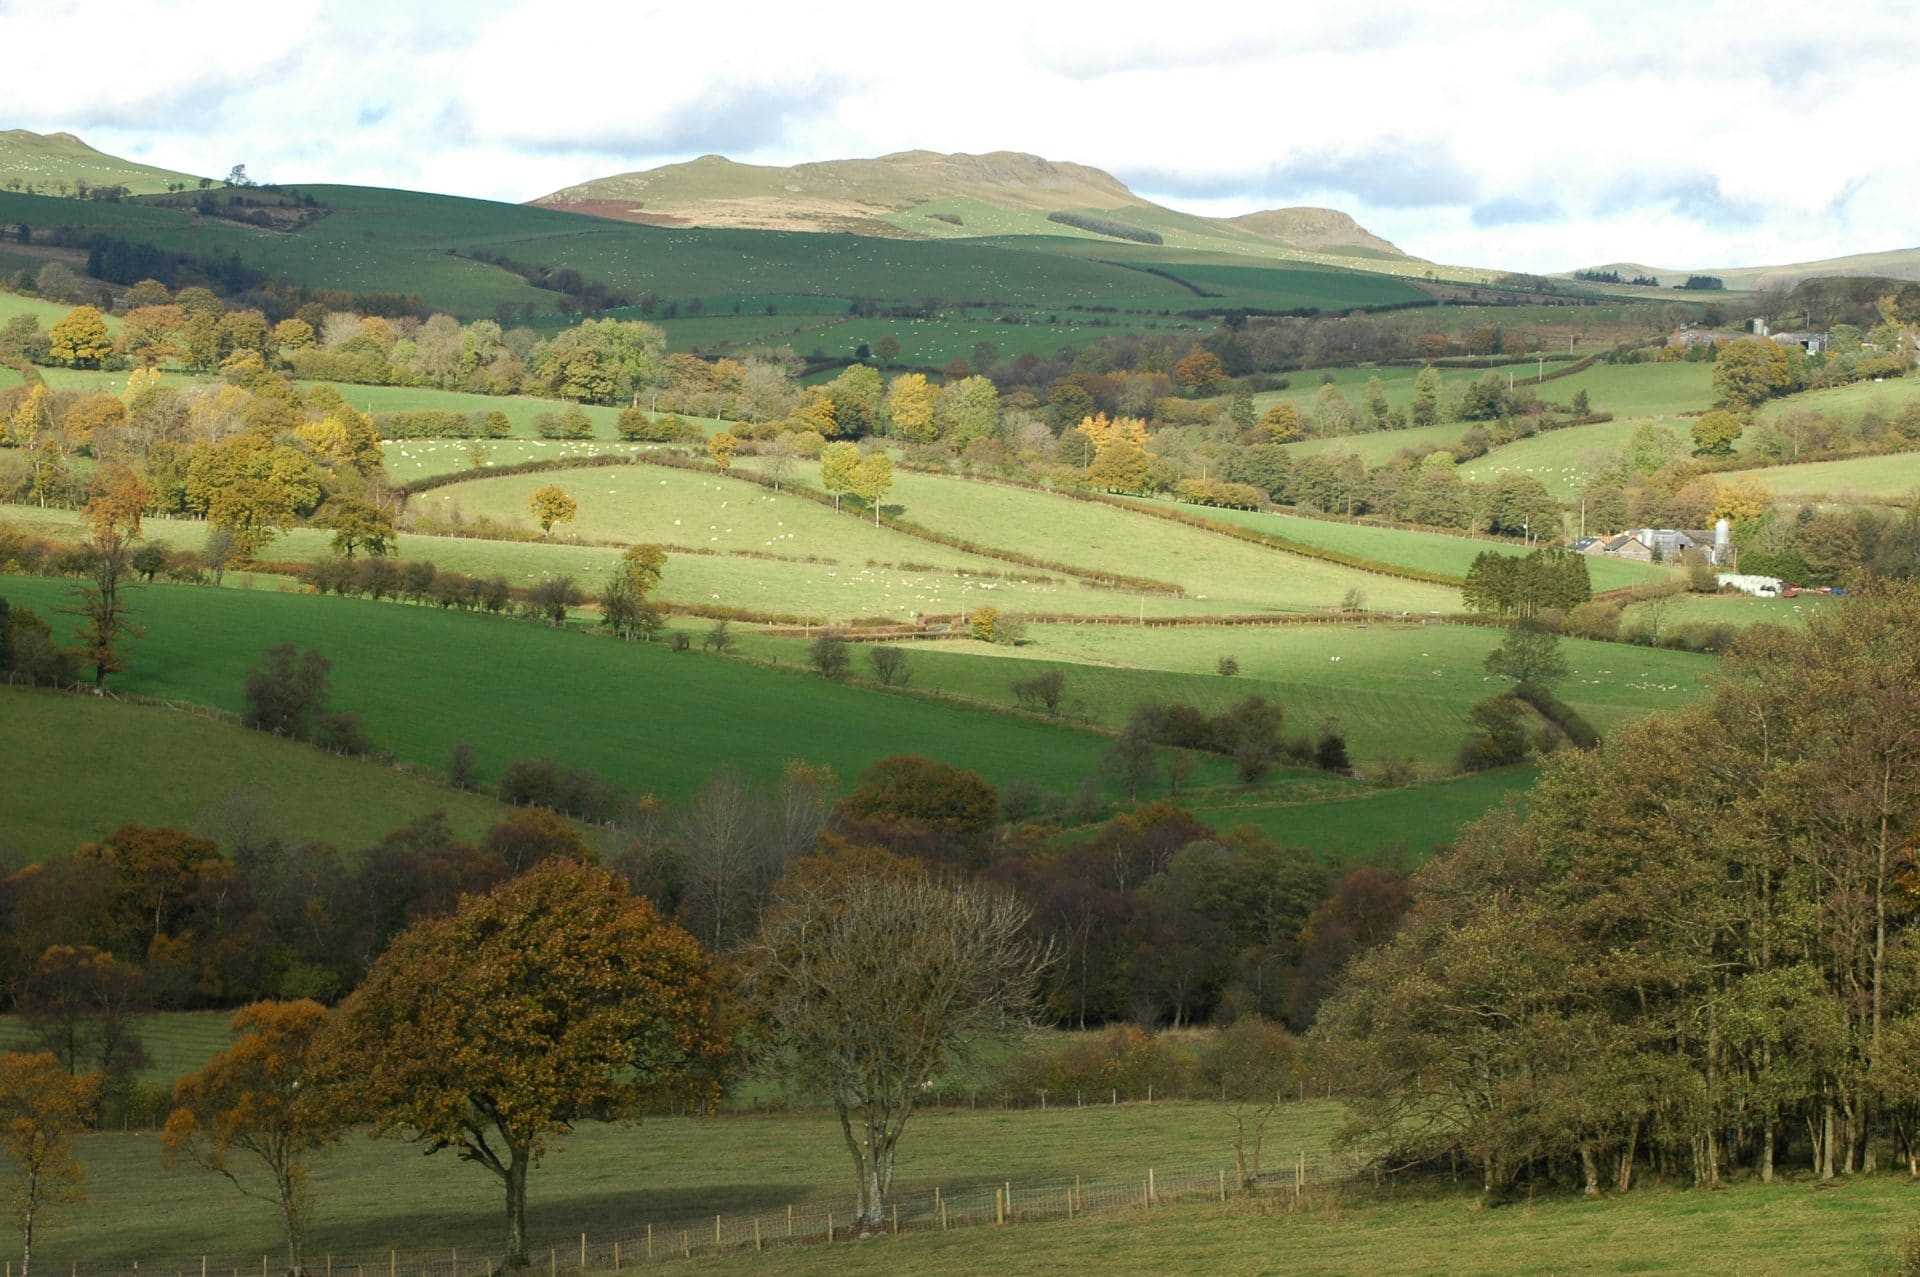 Llandegley Rocks, common land in Powys, the society is campaigning to save this view. Photo: Diana Hulton.